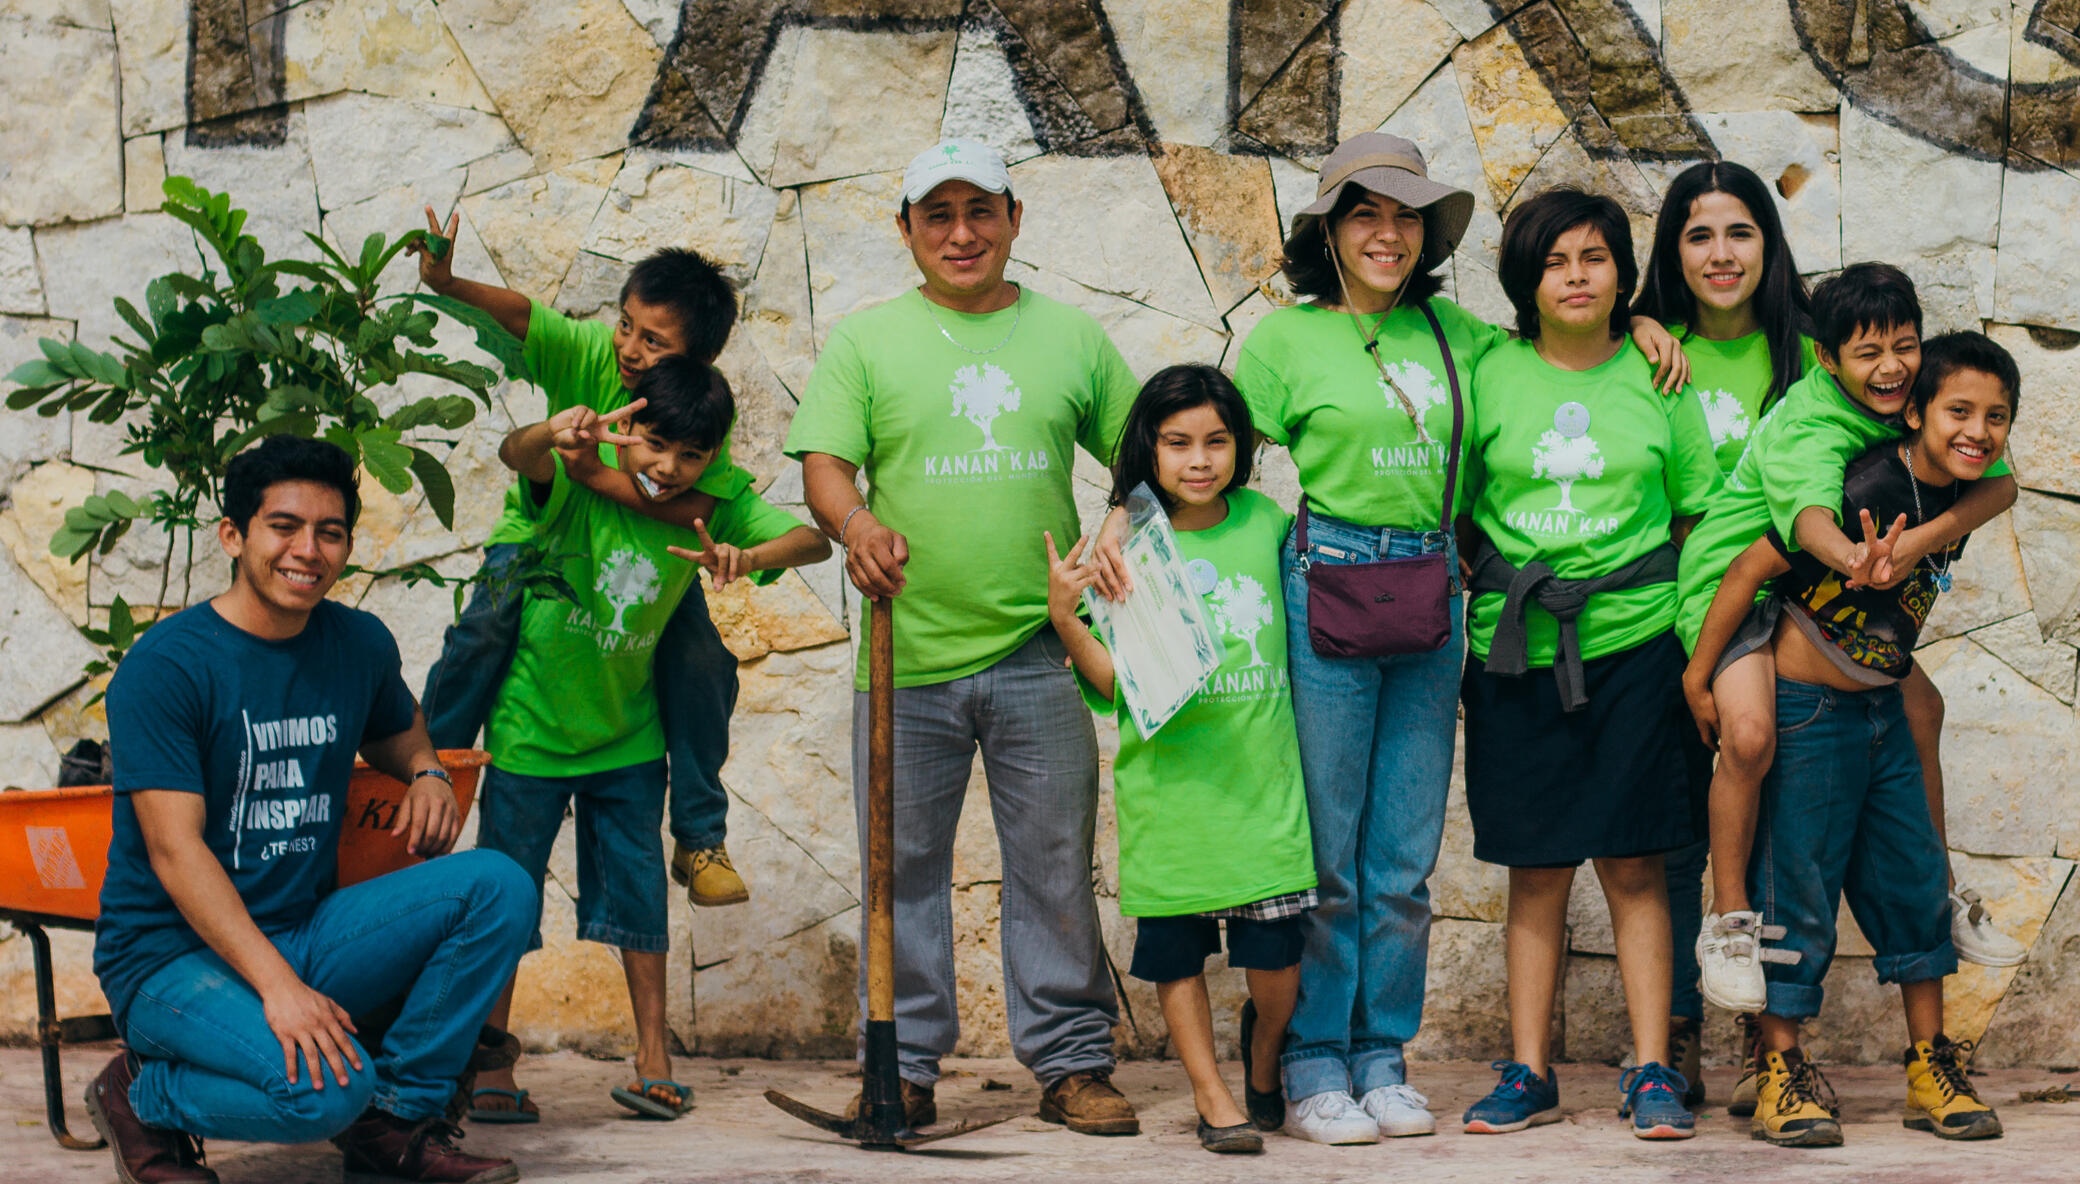 Support Foster to plant 4000 trees in Merida!